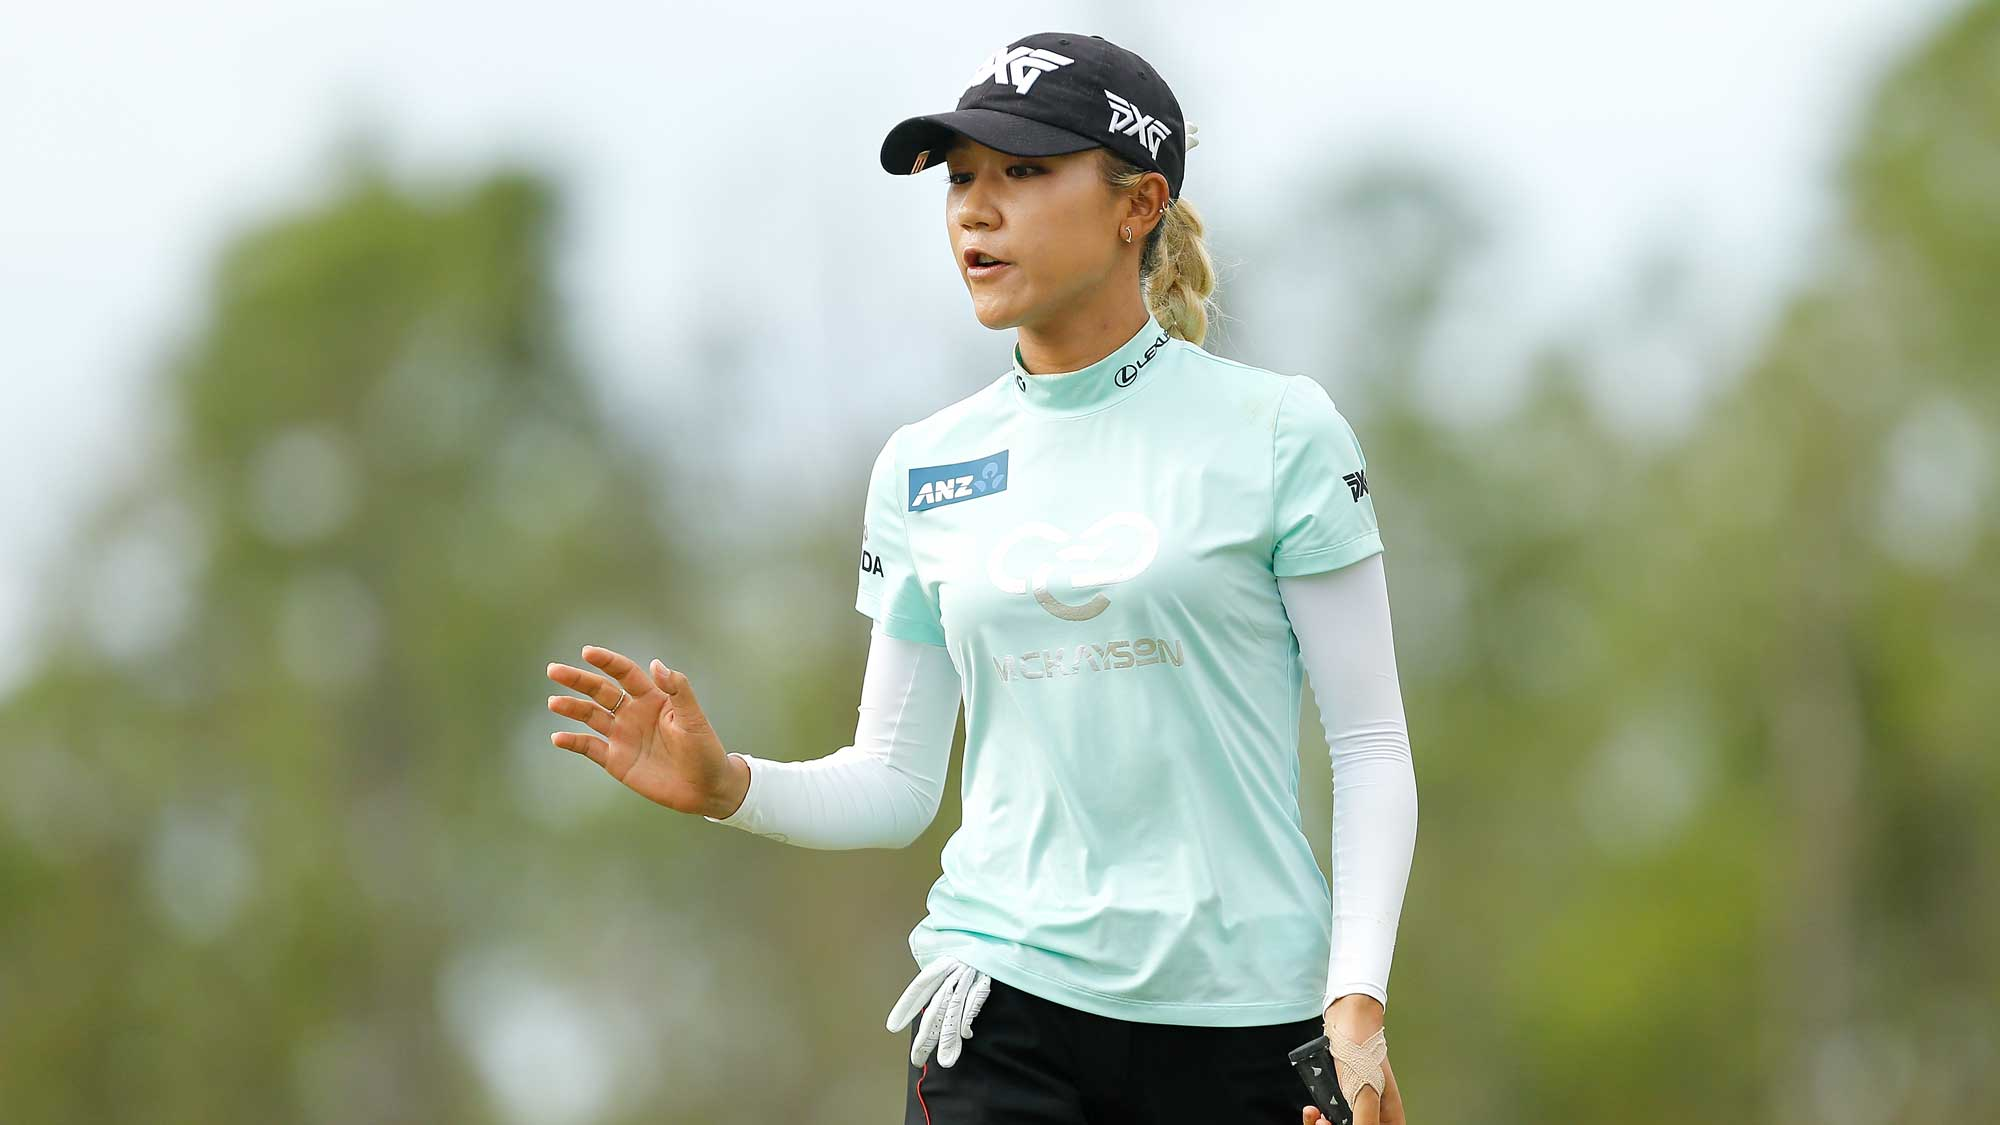 Lydia Ko of New Zealand reacts after a putt on the first green during the final round of the LPGA CME Group Tour Championship